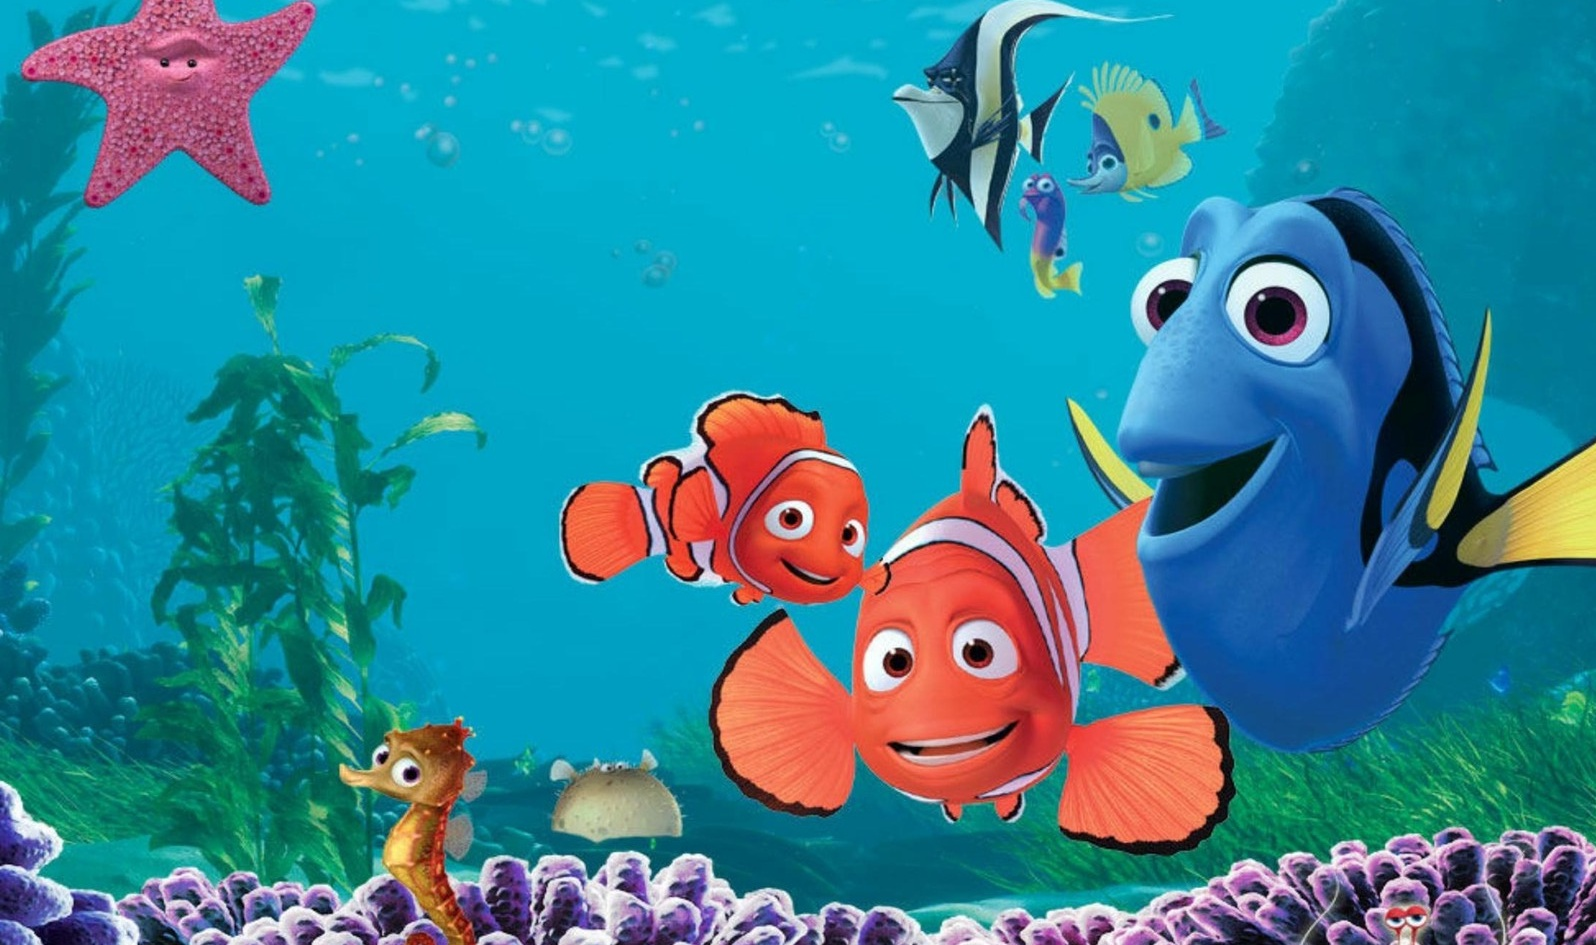 Hd Images Wallpaper Free Download Finding Nemo Wallpaper Free Download